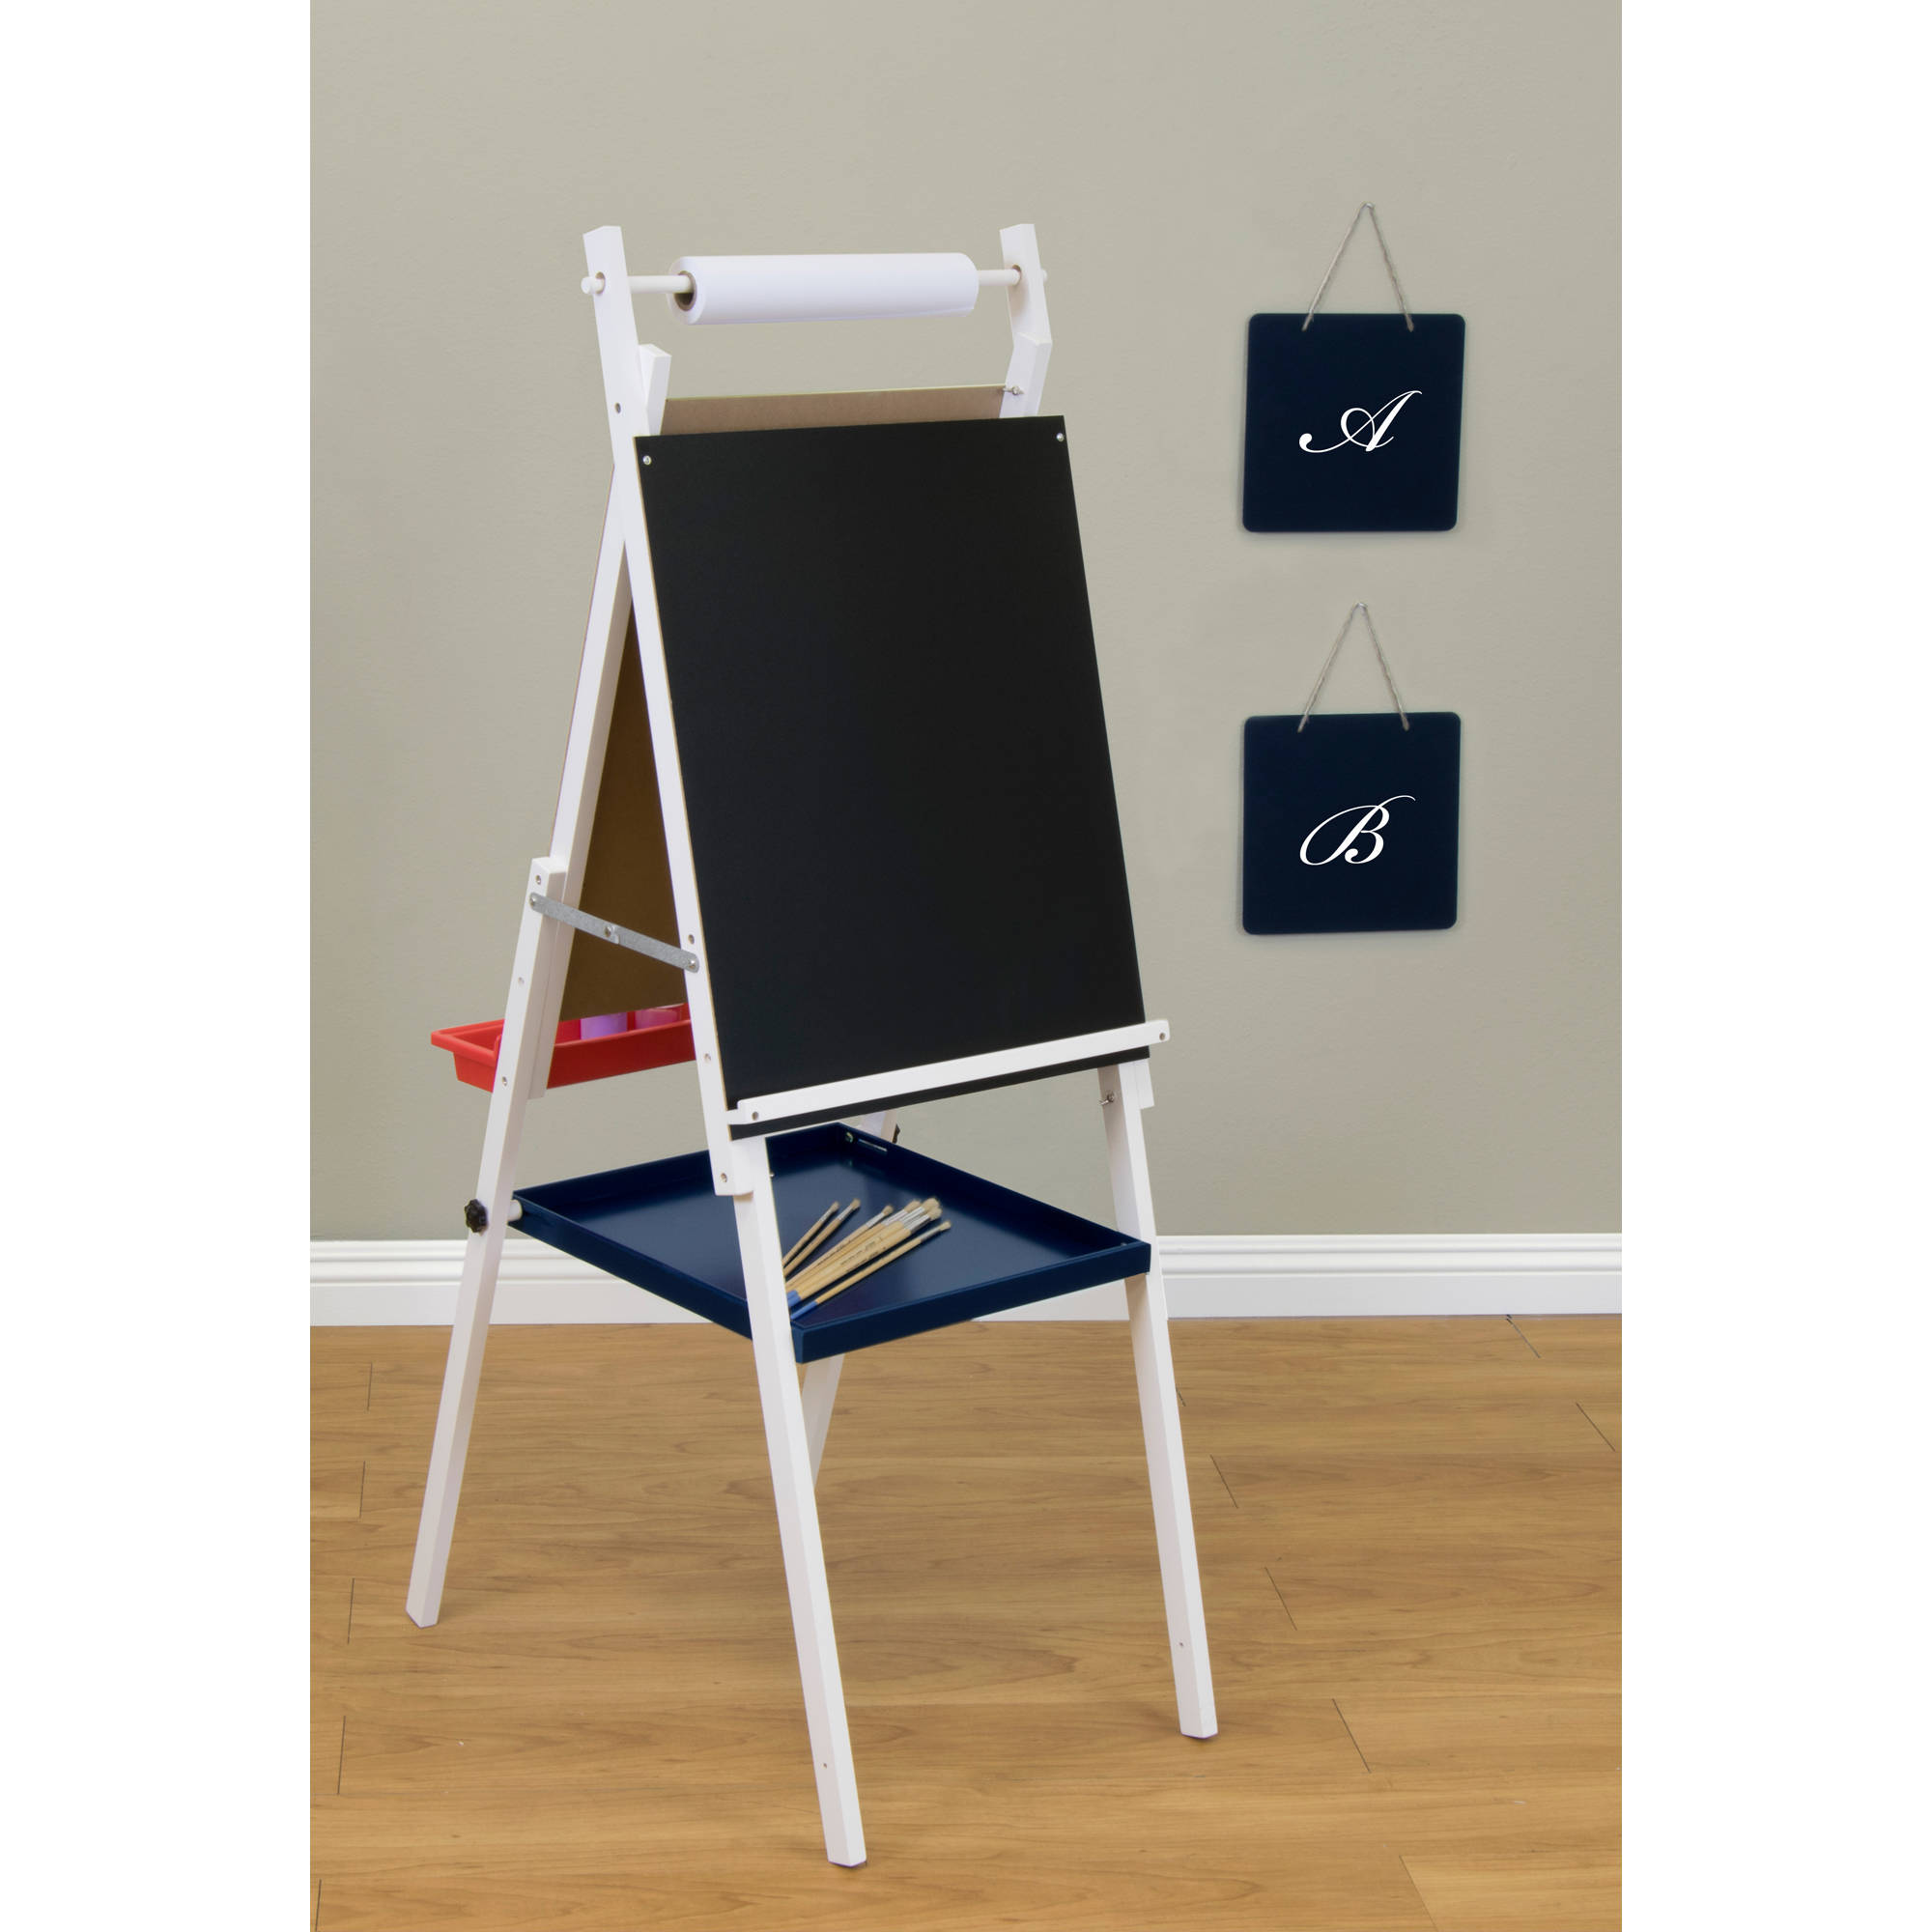 Charmant Studio Designs Kids Easel With Storage, White